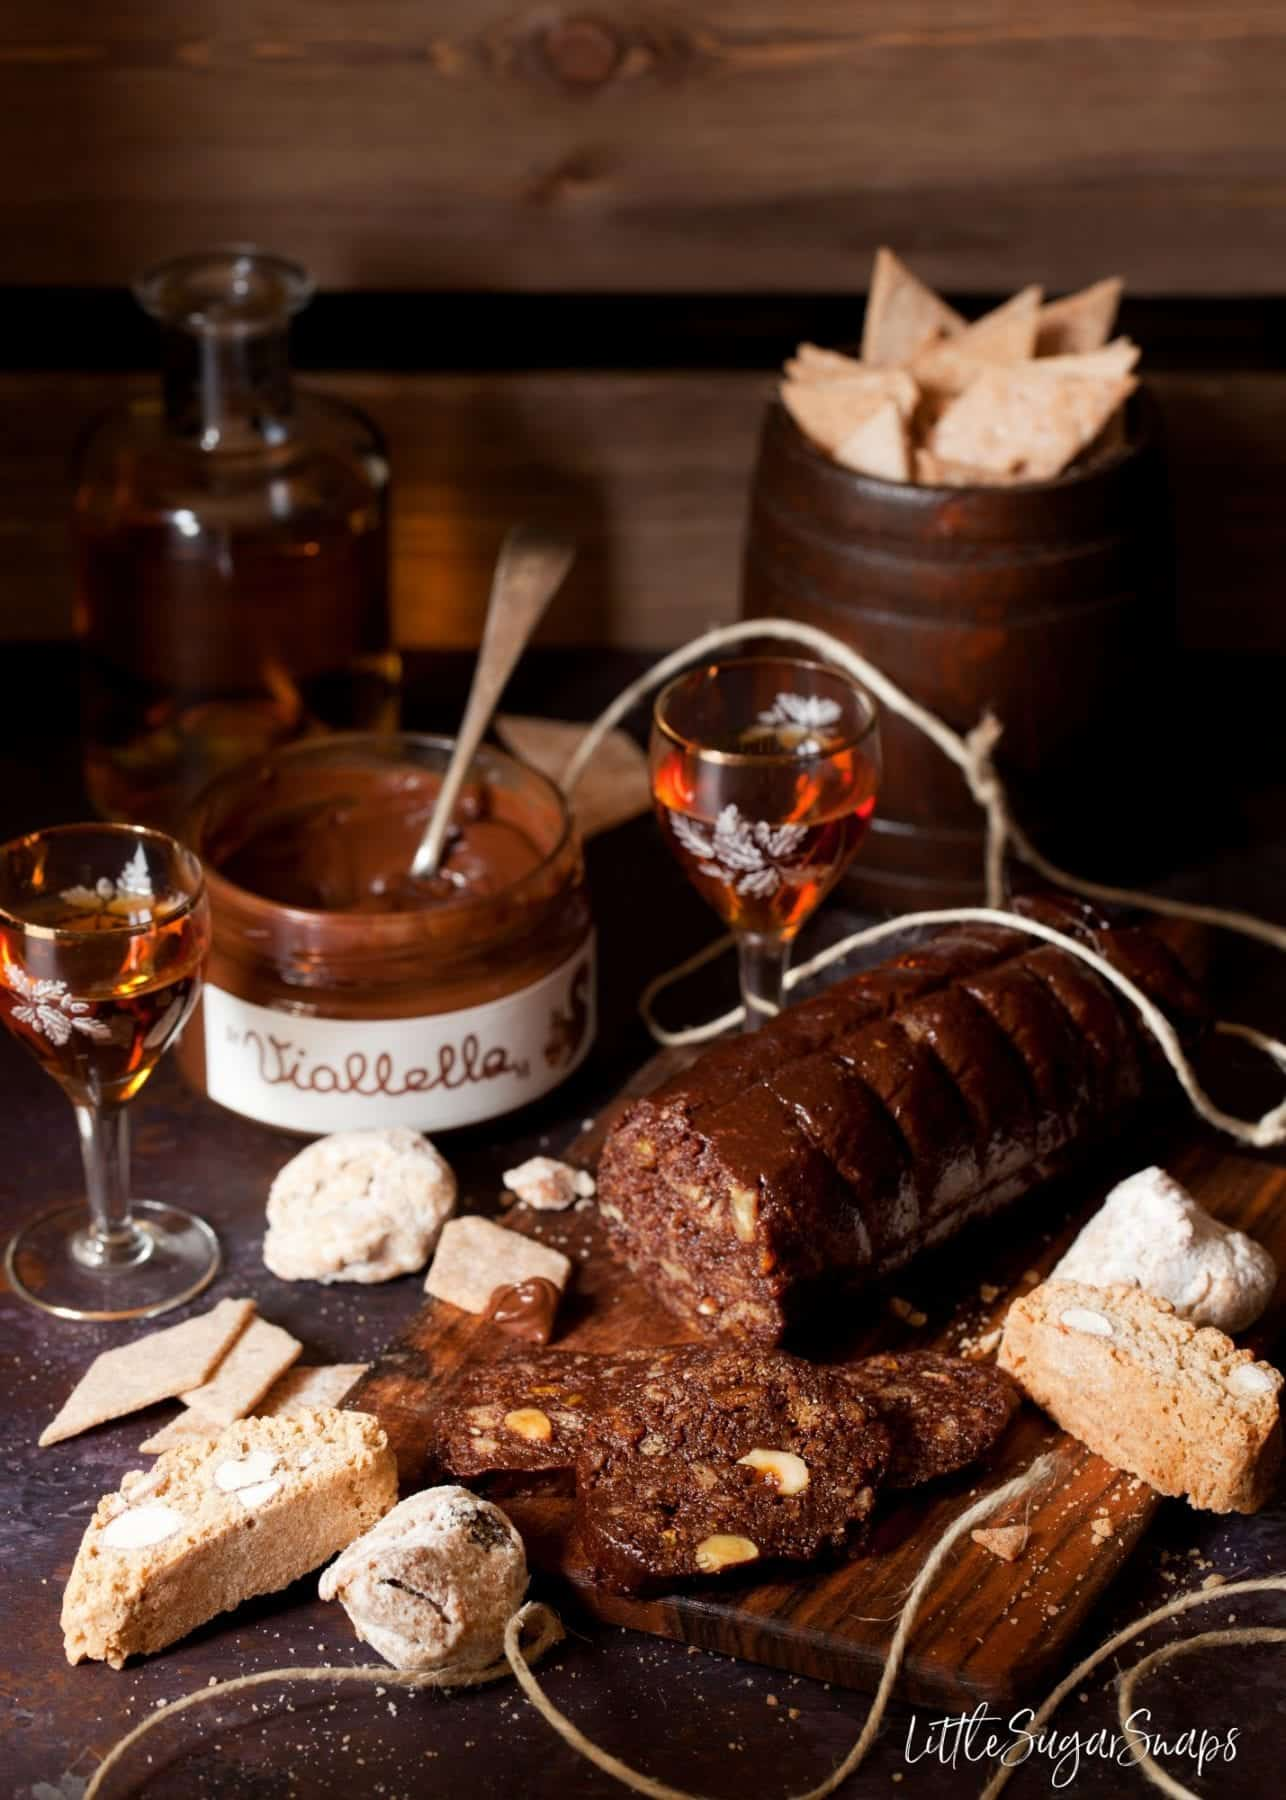 Chocolate salami, chocolate spread and biscuits on a serving board with a glass of vin santo